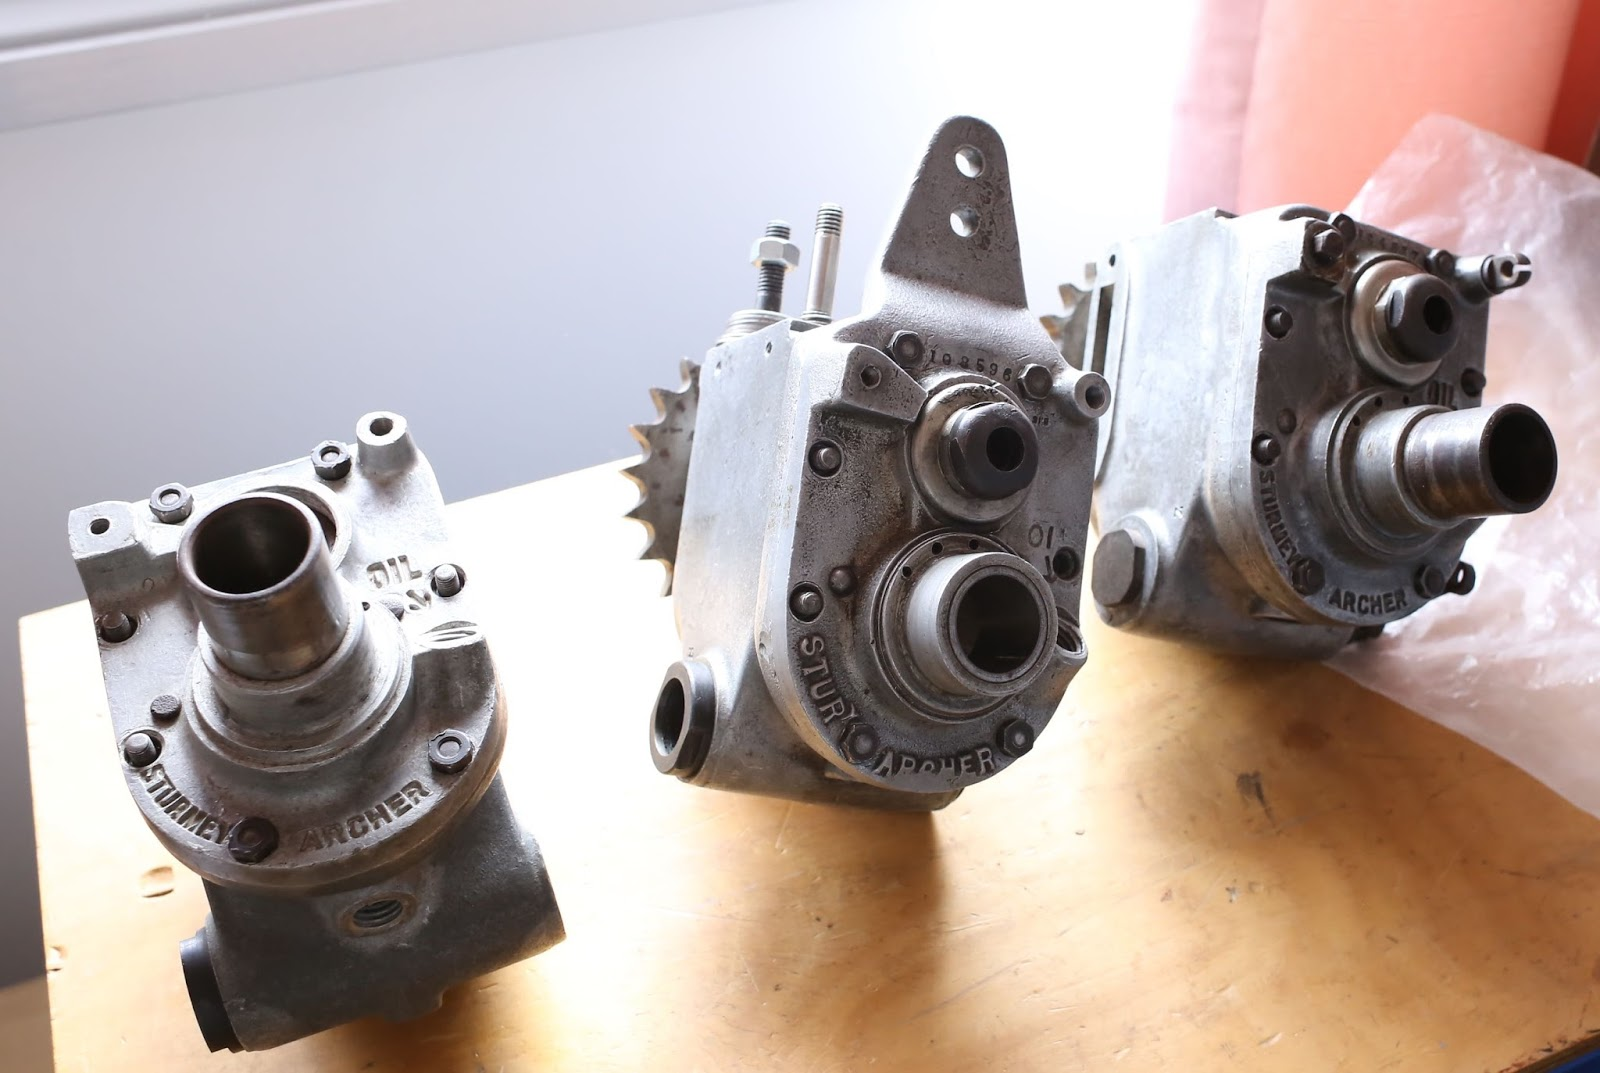 The Velobanjogent Velobanjogents Off To Uk For 10 Days Gear Box Of Motorcycle Some Sturmey Archer Gearbox Casesall Internals Were Carefully Oiled And Packed Away